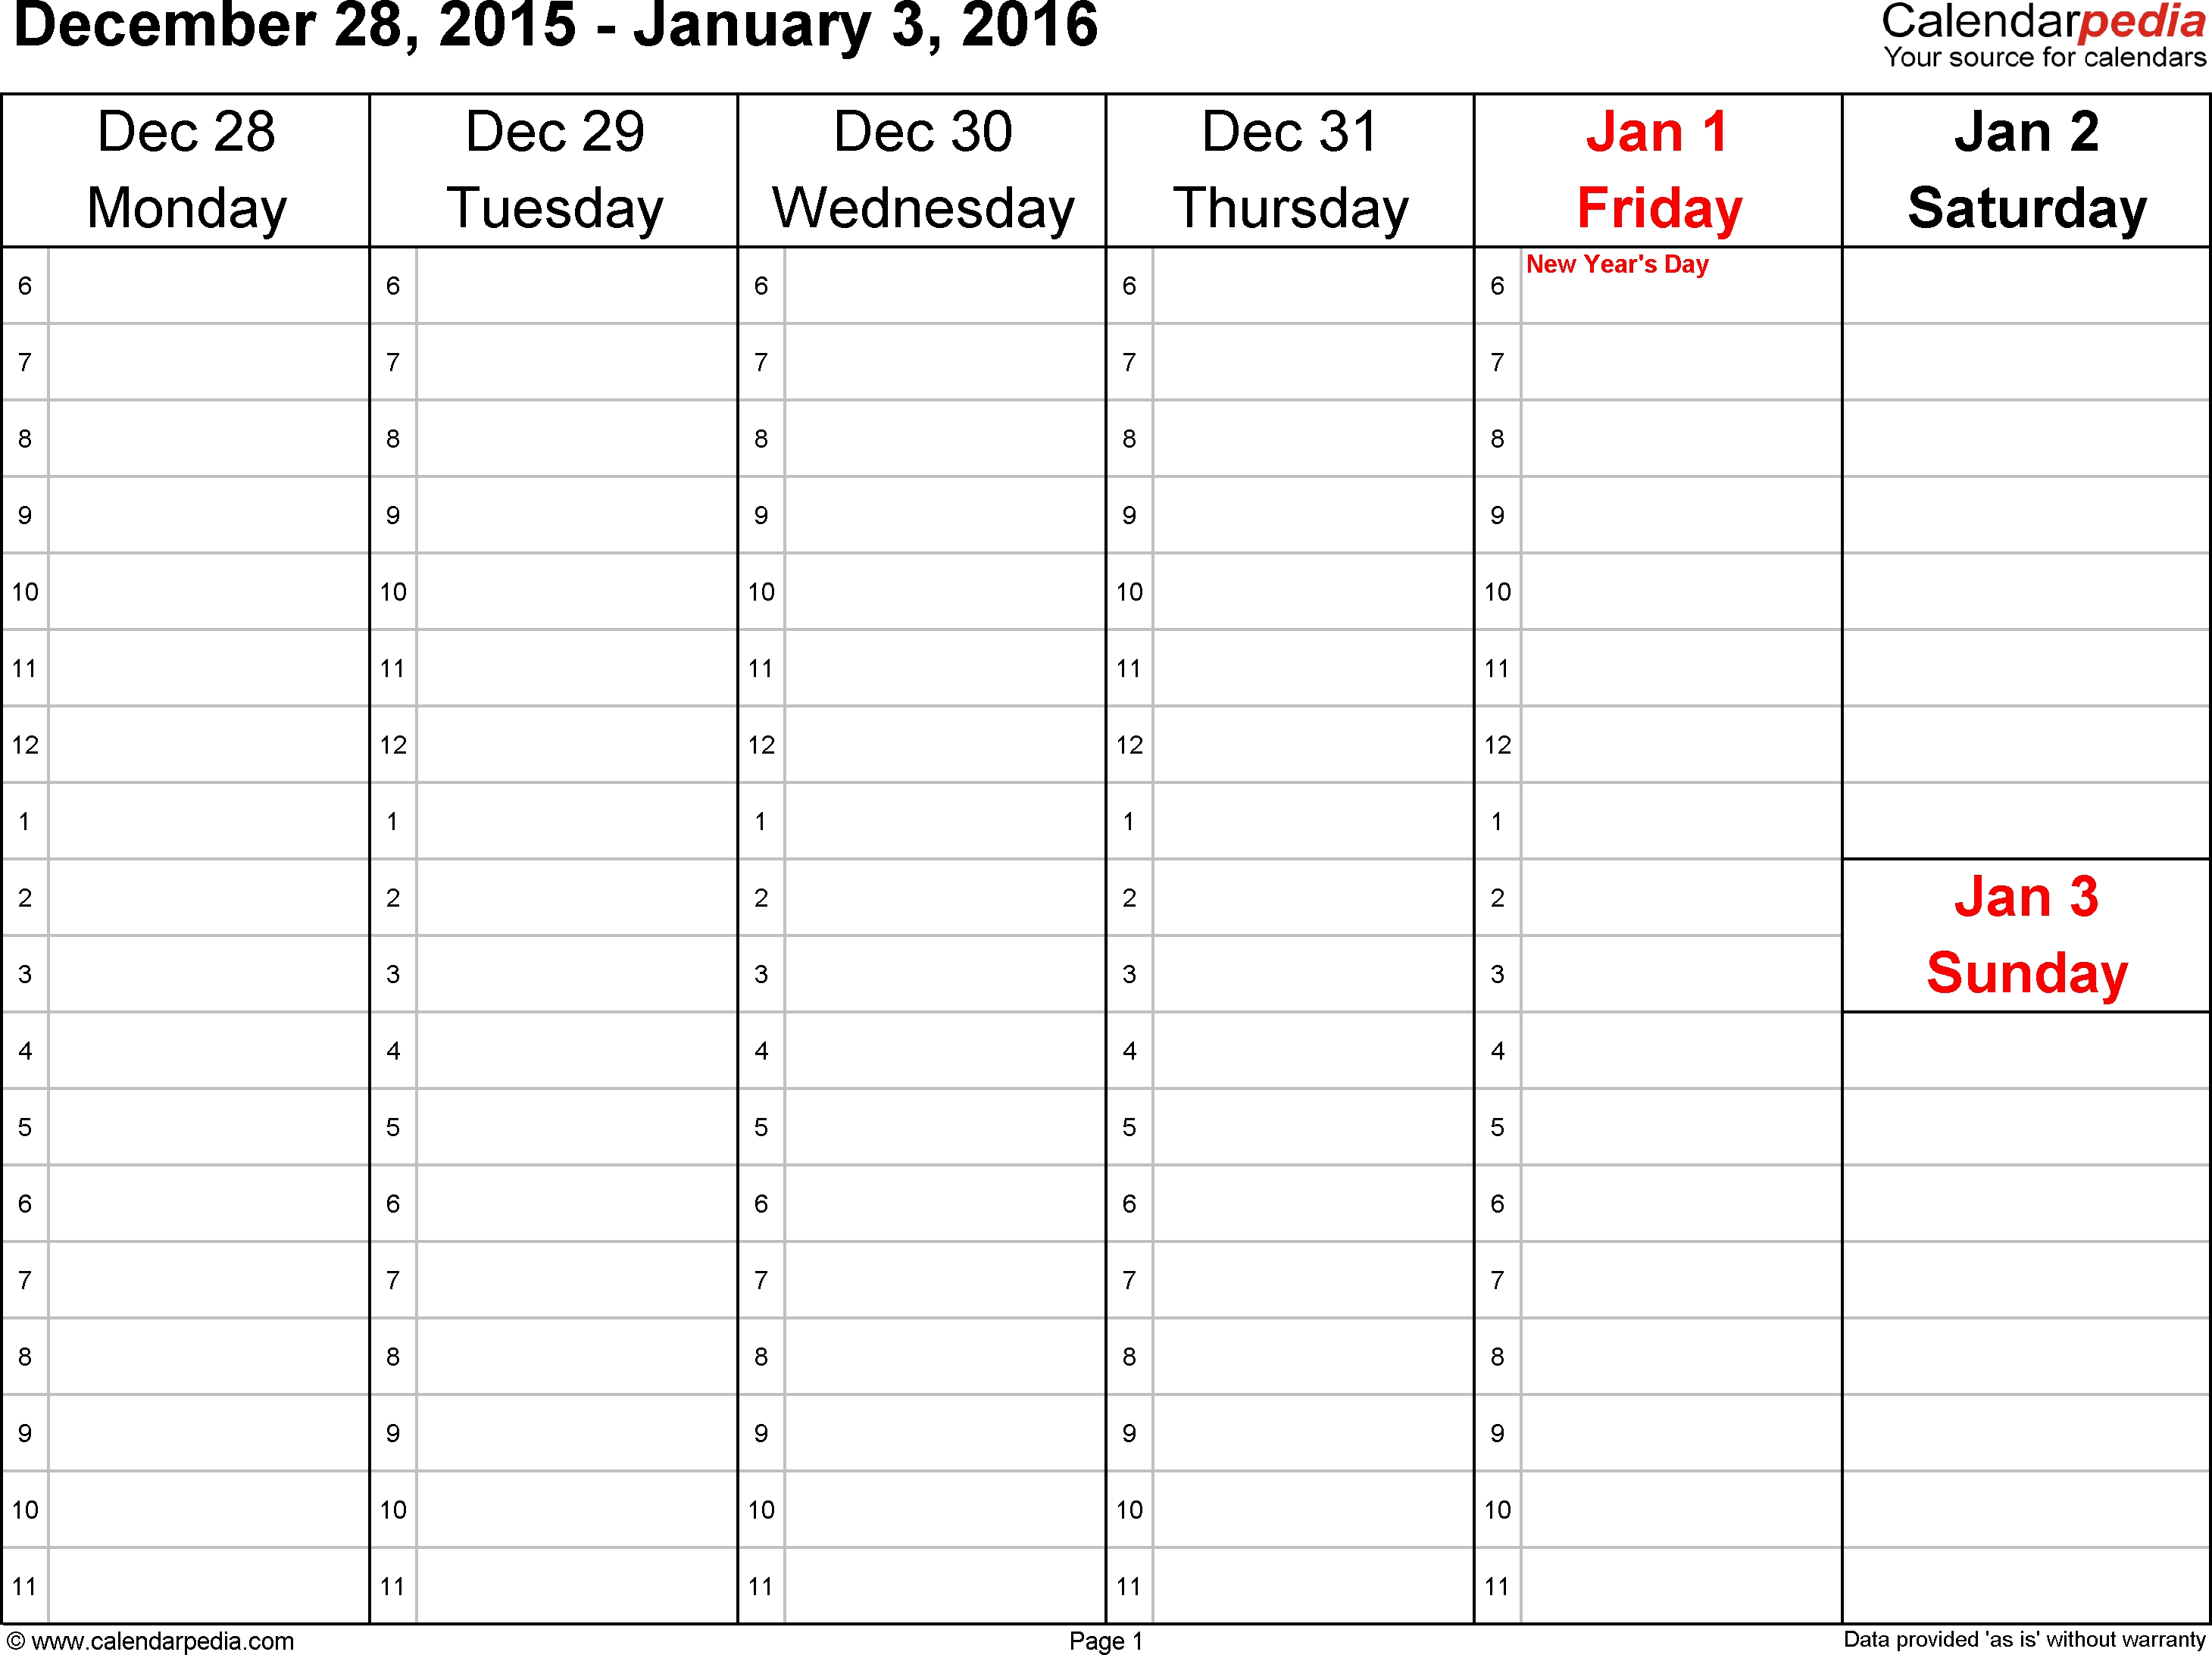 Free Weekly Schedule Templates For Word Monday Through Day Template regarding Weekly Schedule Monday Through Friday